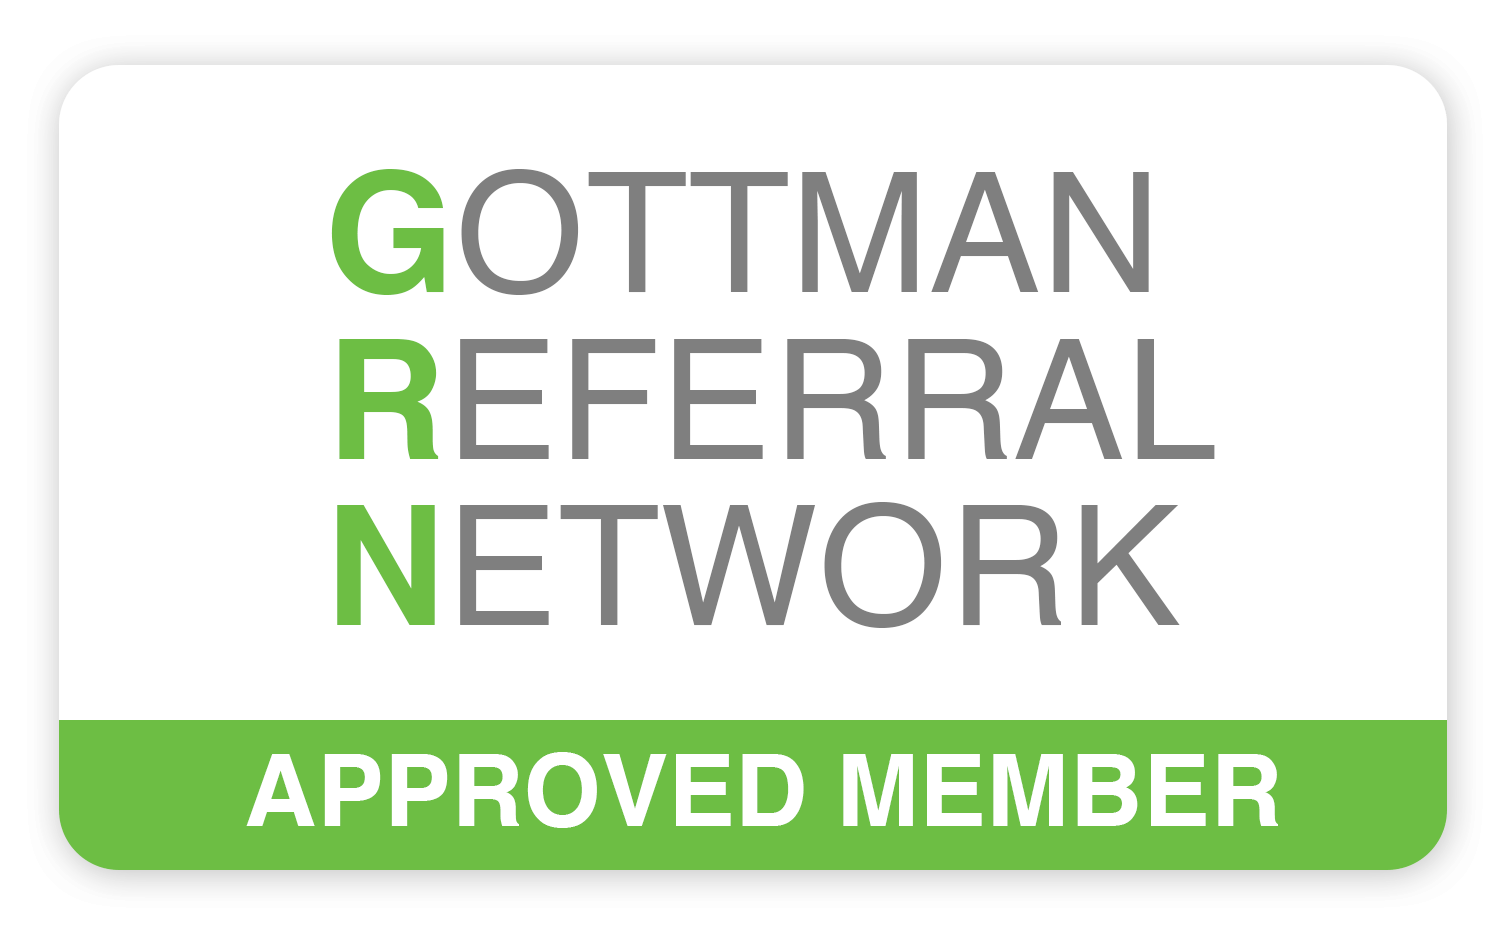 Mollie Eliasof's profile on the Gottman Referral Network